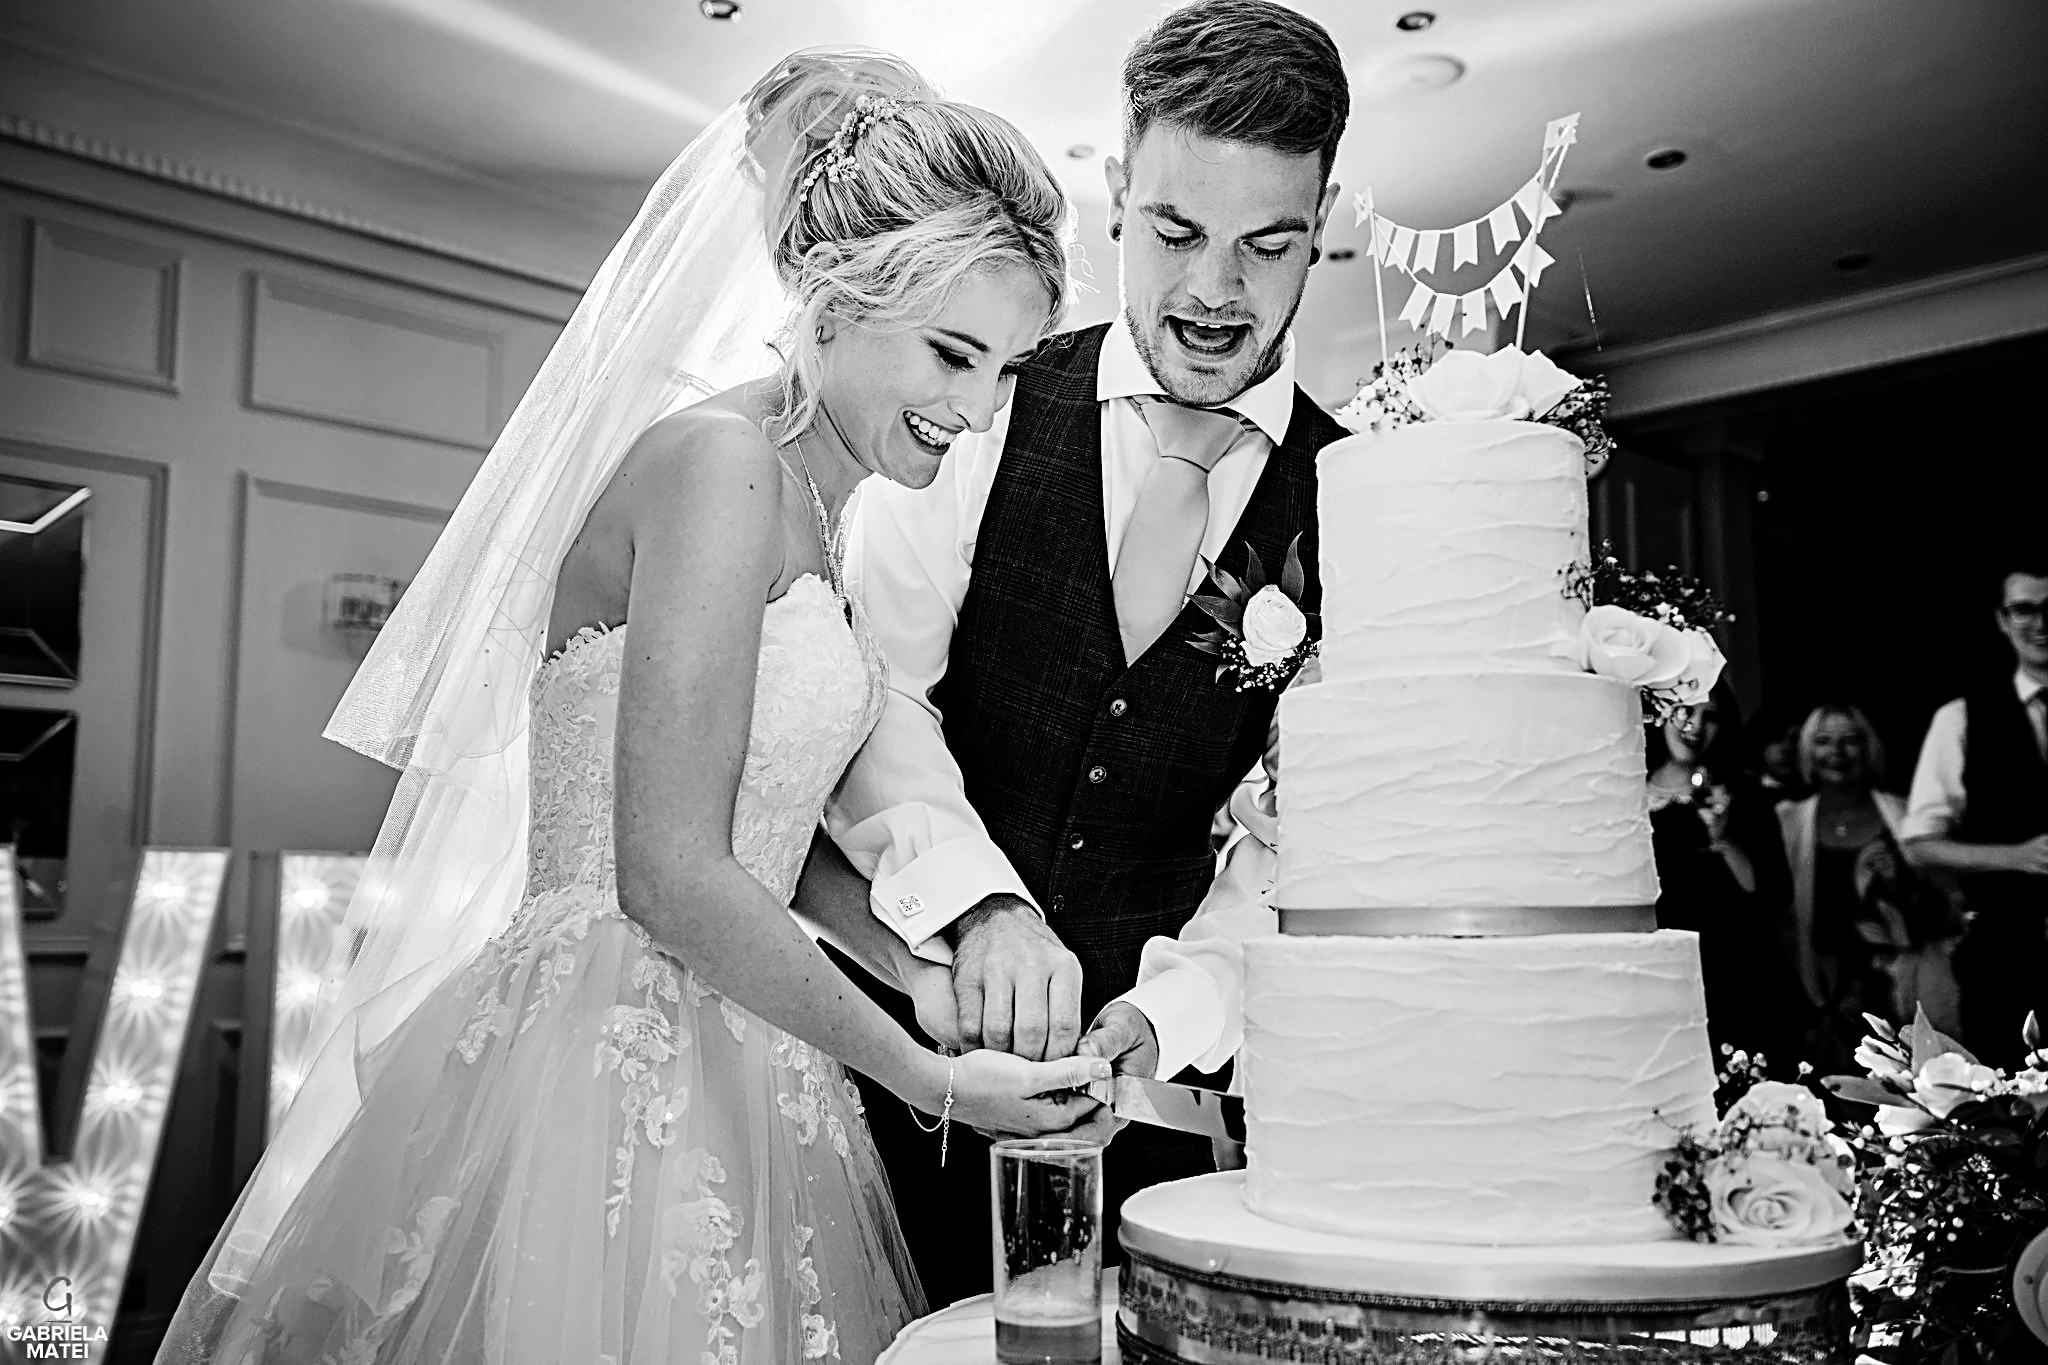 Bride and groom cutting the cake during wedding reception in London